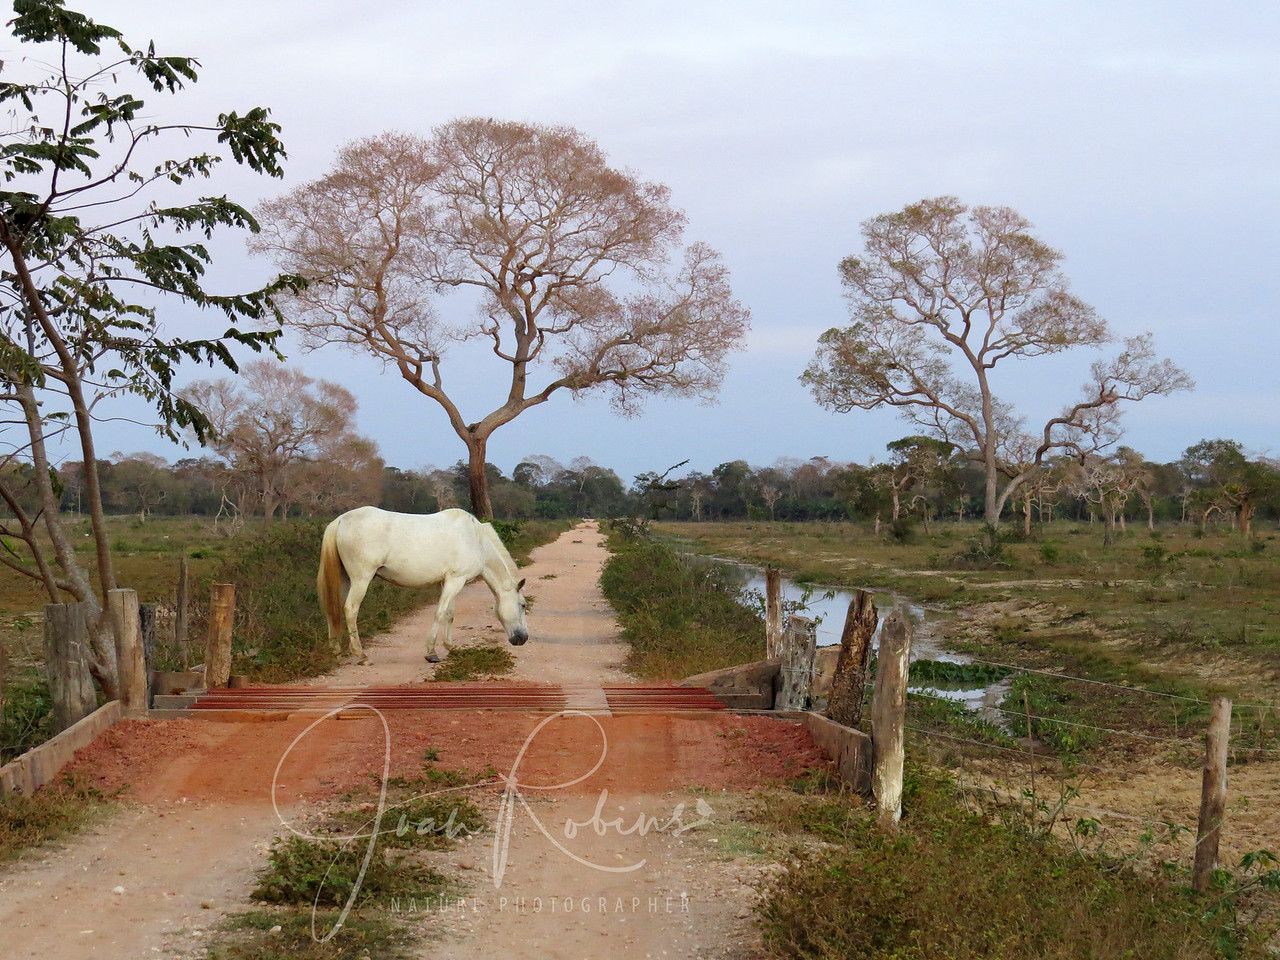 Early morning August 8, 2013 as I set off for a walk in the Brazil Pantanal.